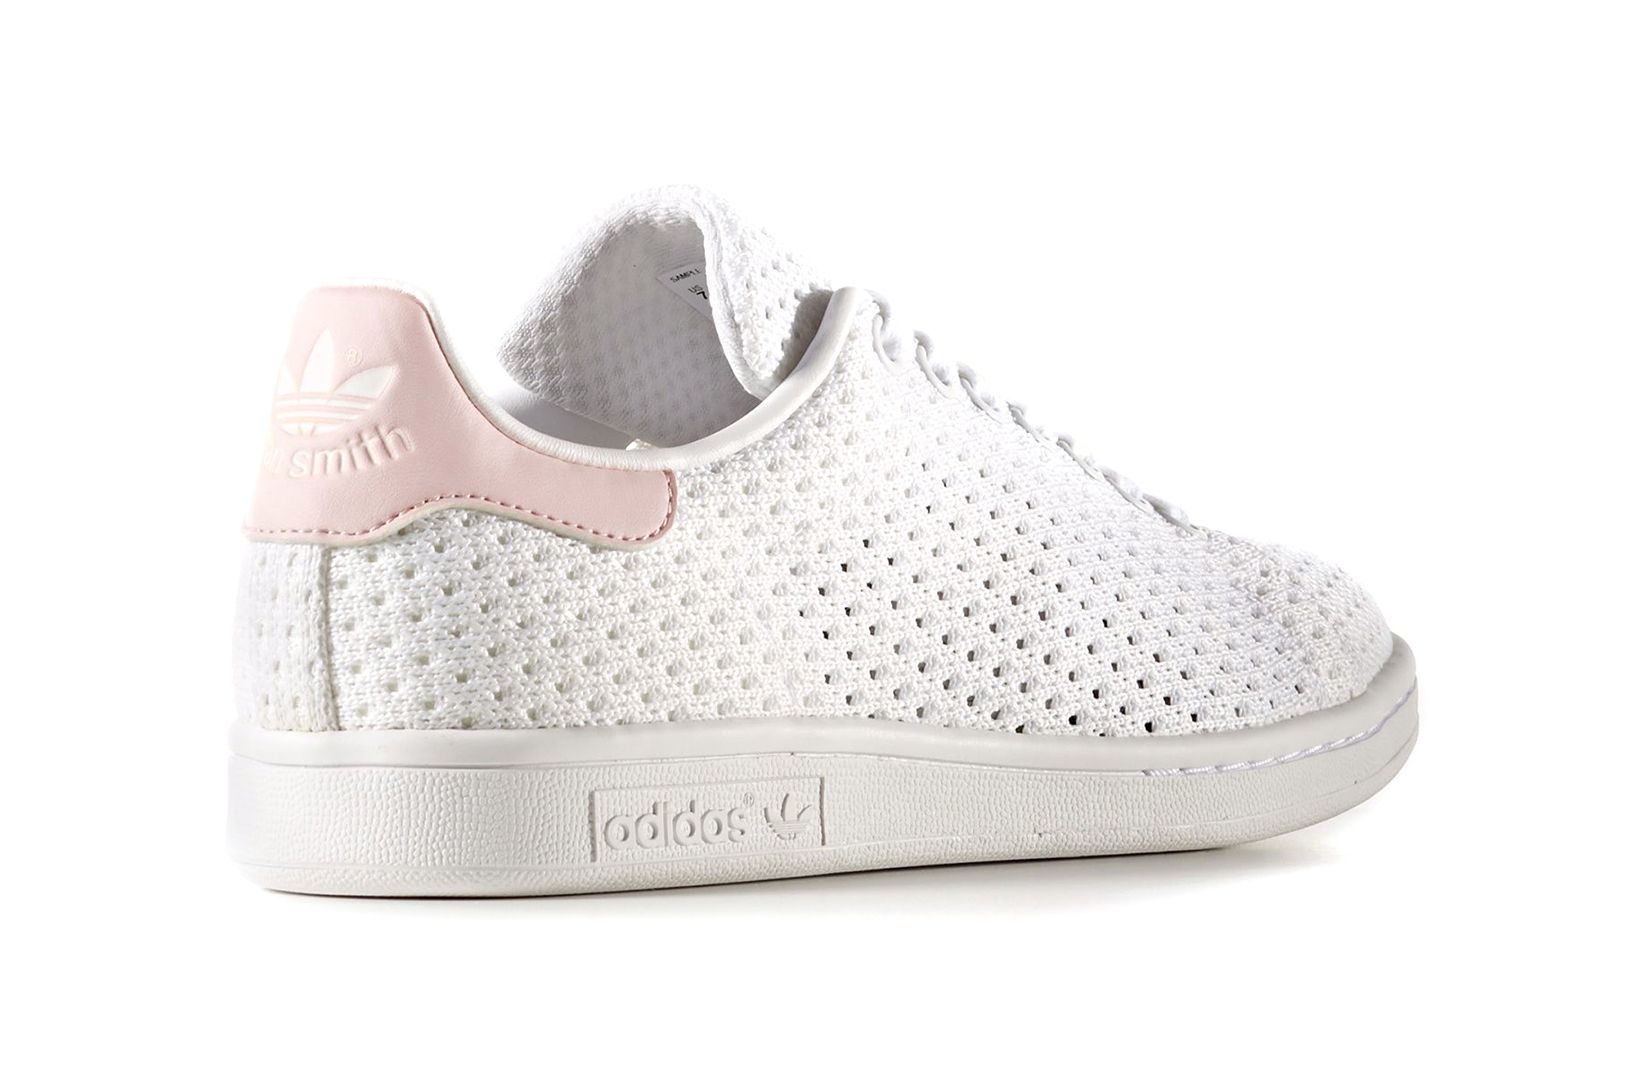 outlet store 2ca1f 6ce3e The Heel on the adidas Stan Smith Is Dipped in Baby Pink and ...